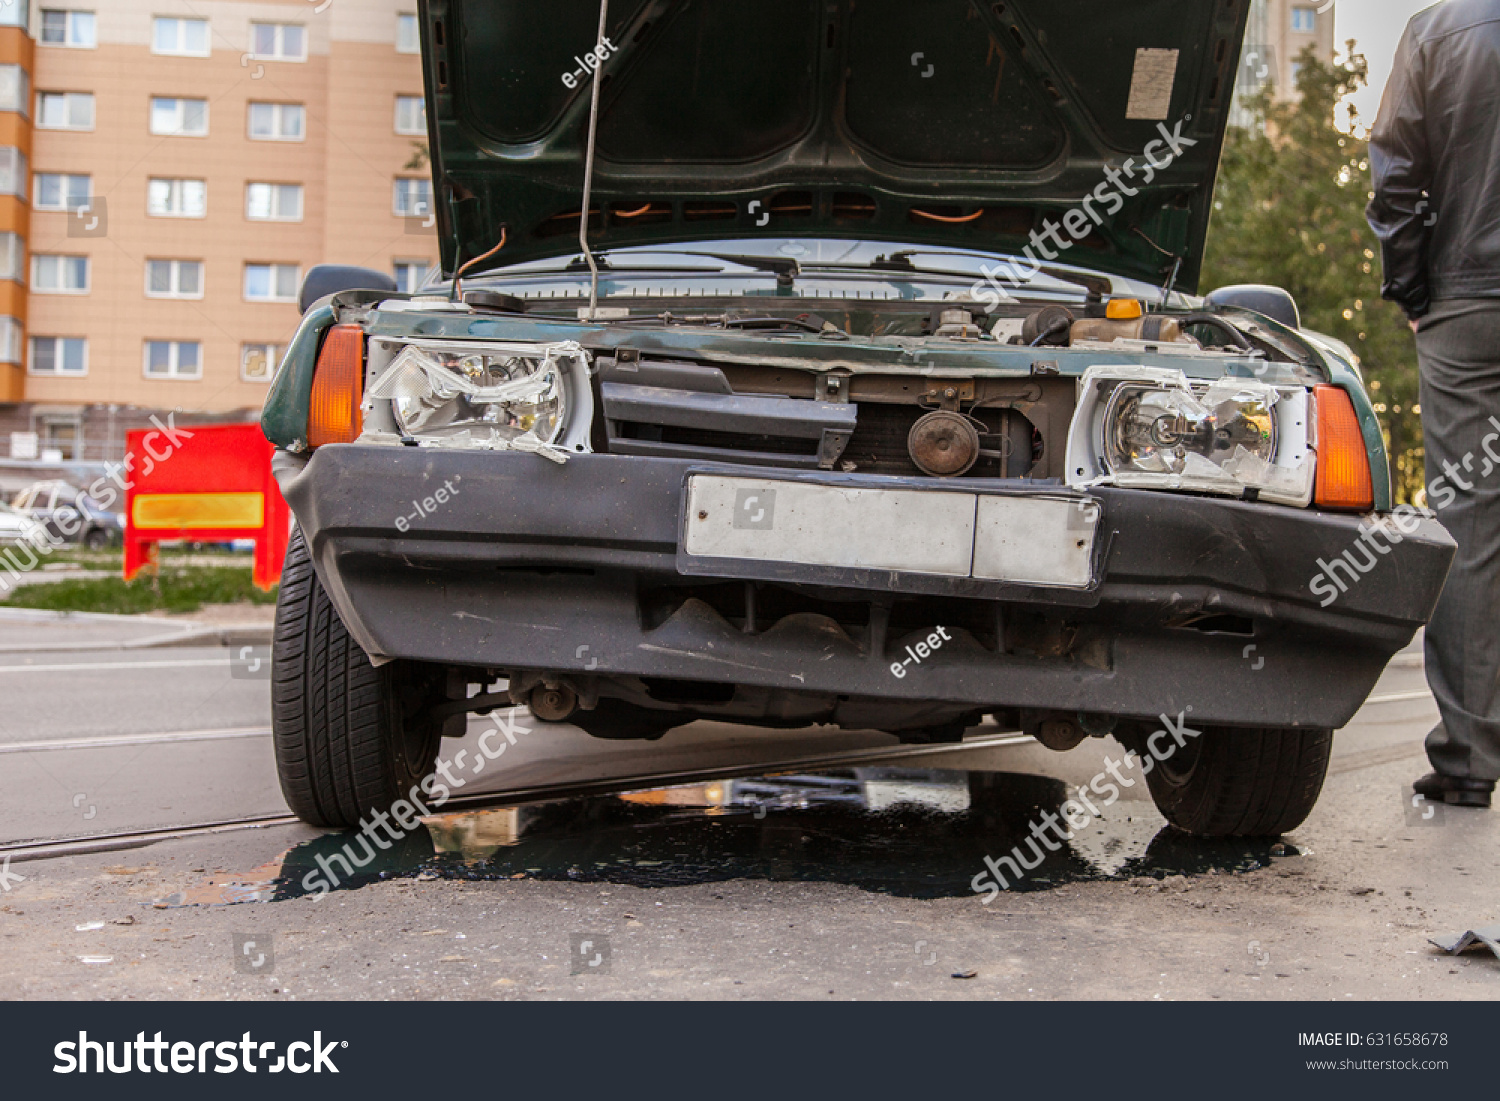 Road Traffic Accident Old Car Crash Stock Photo (Royalty Free ...